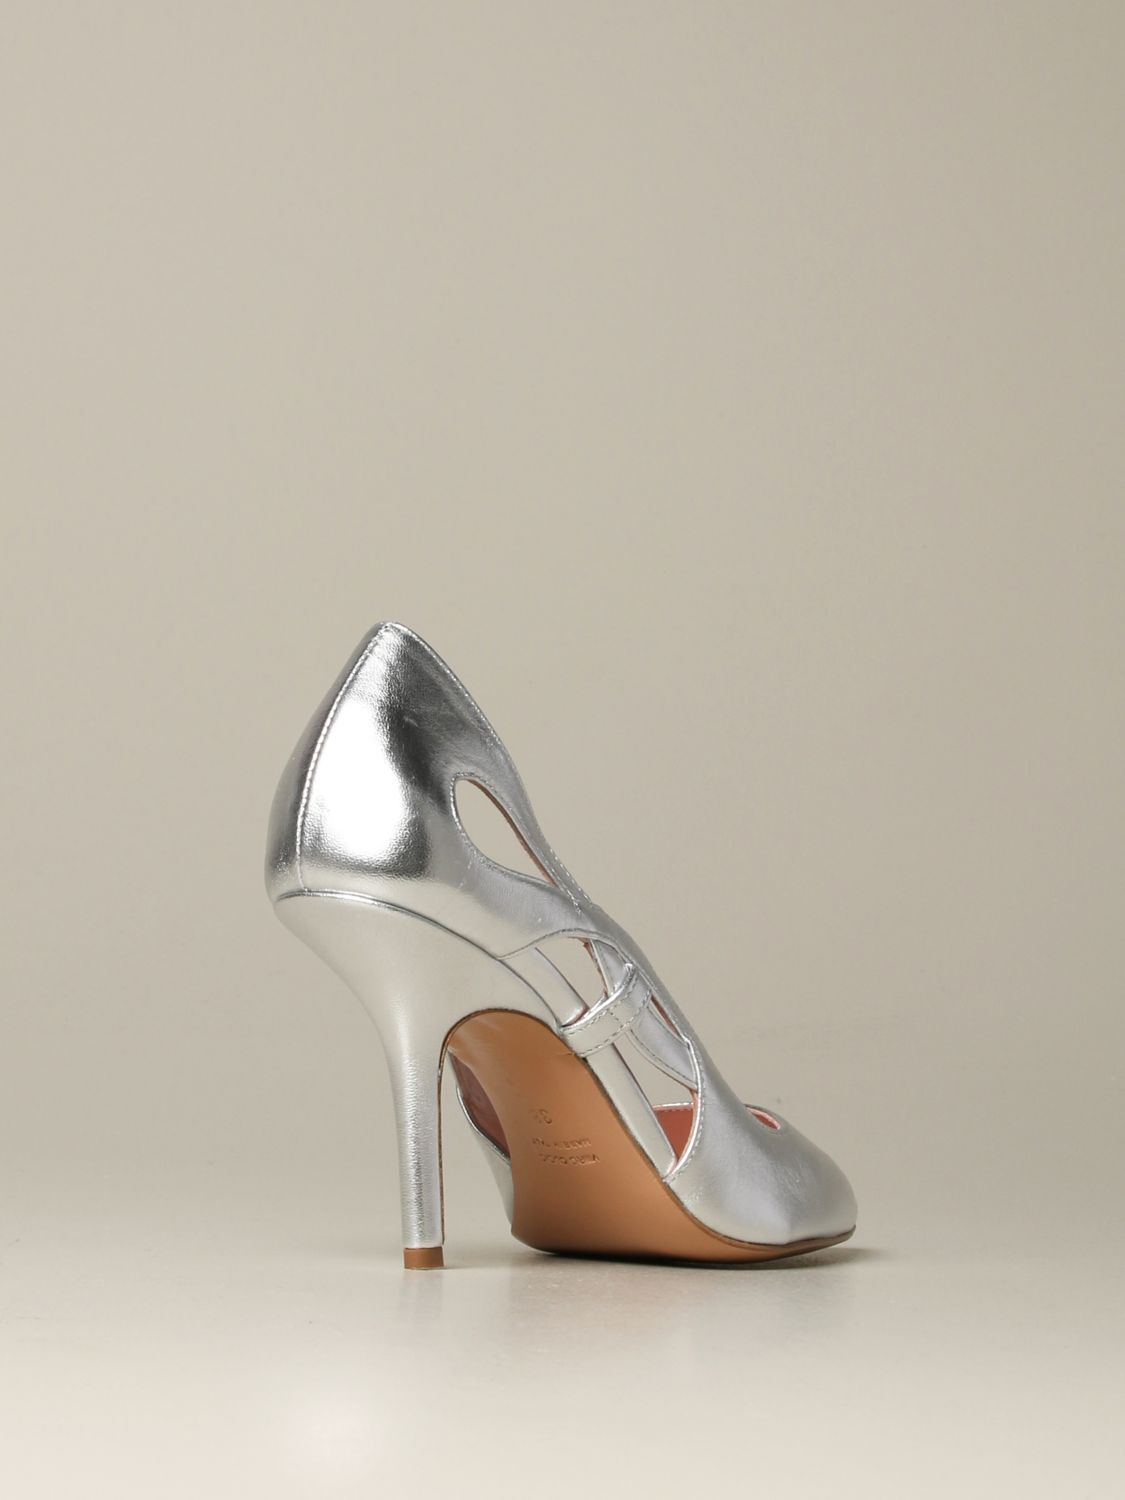 Court shoes Anna F.: Shoes women Anna F. silver 3